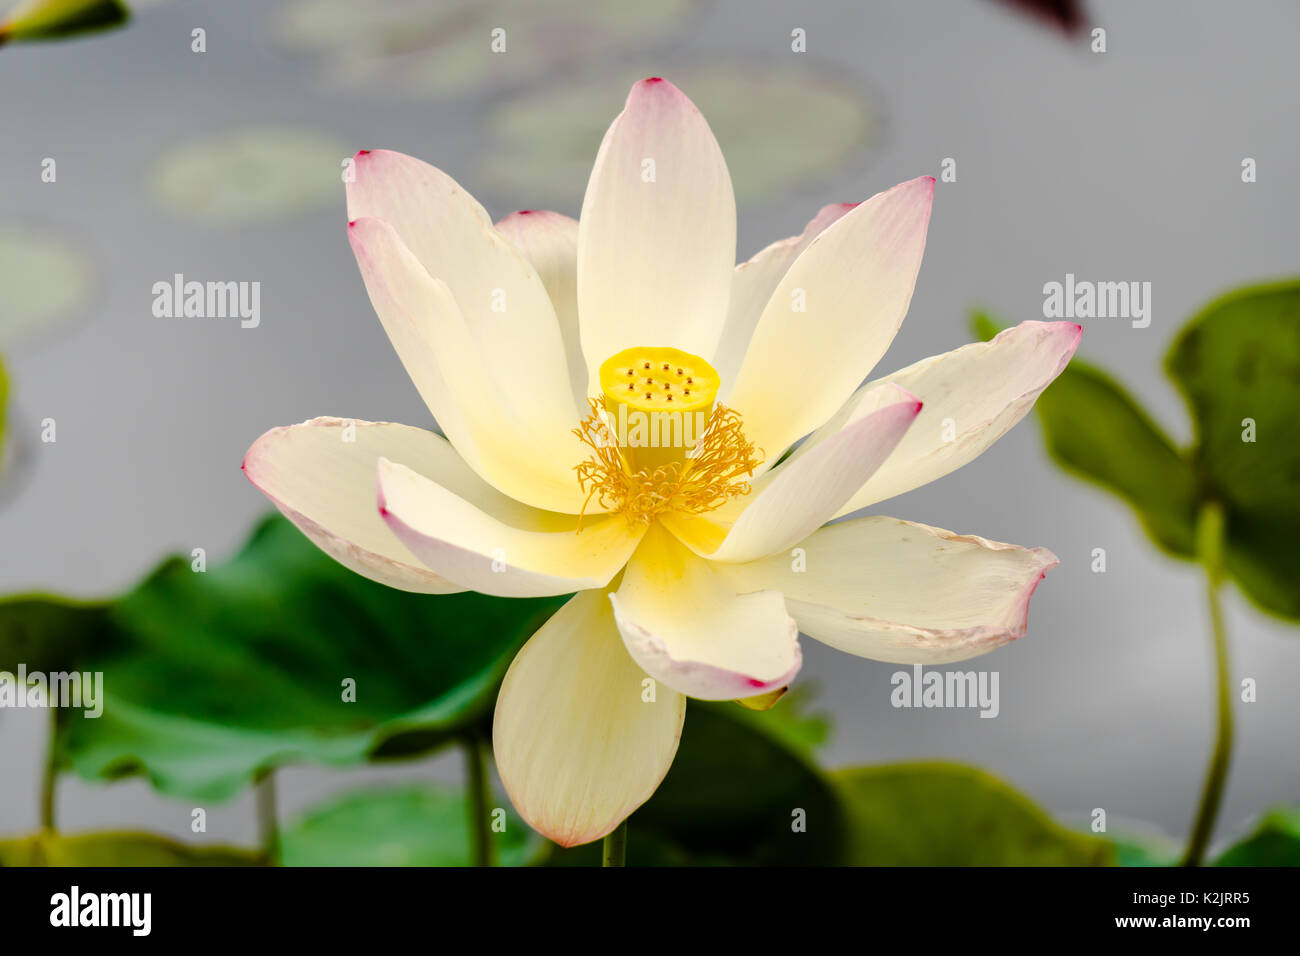 Single White Yellow And Pink Lotus Flower In A Pond Stock Photo